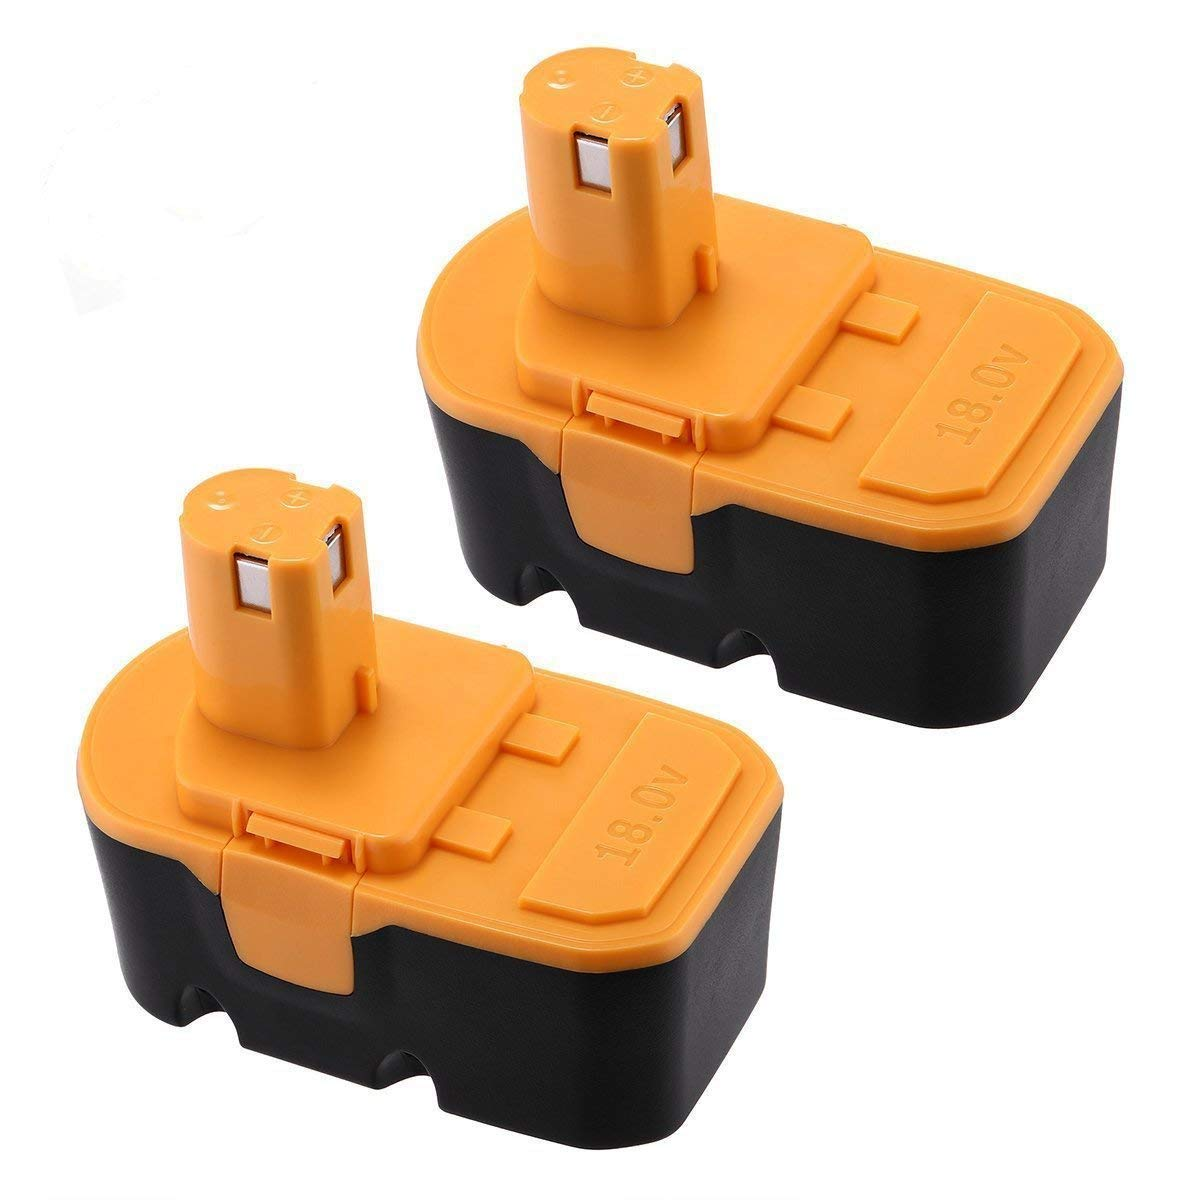 [Generic] Powerextra Upgraded 2 Pack 3000mAh Battery NI-MH Replacement Battery for Ryobi 18V Battery Ryobi one plus Battery Ryobi P100/P101 ONE+ 18V Battery